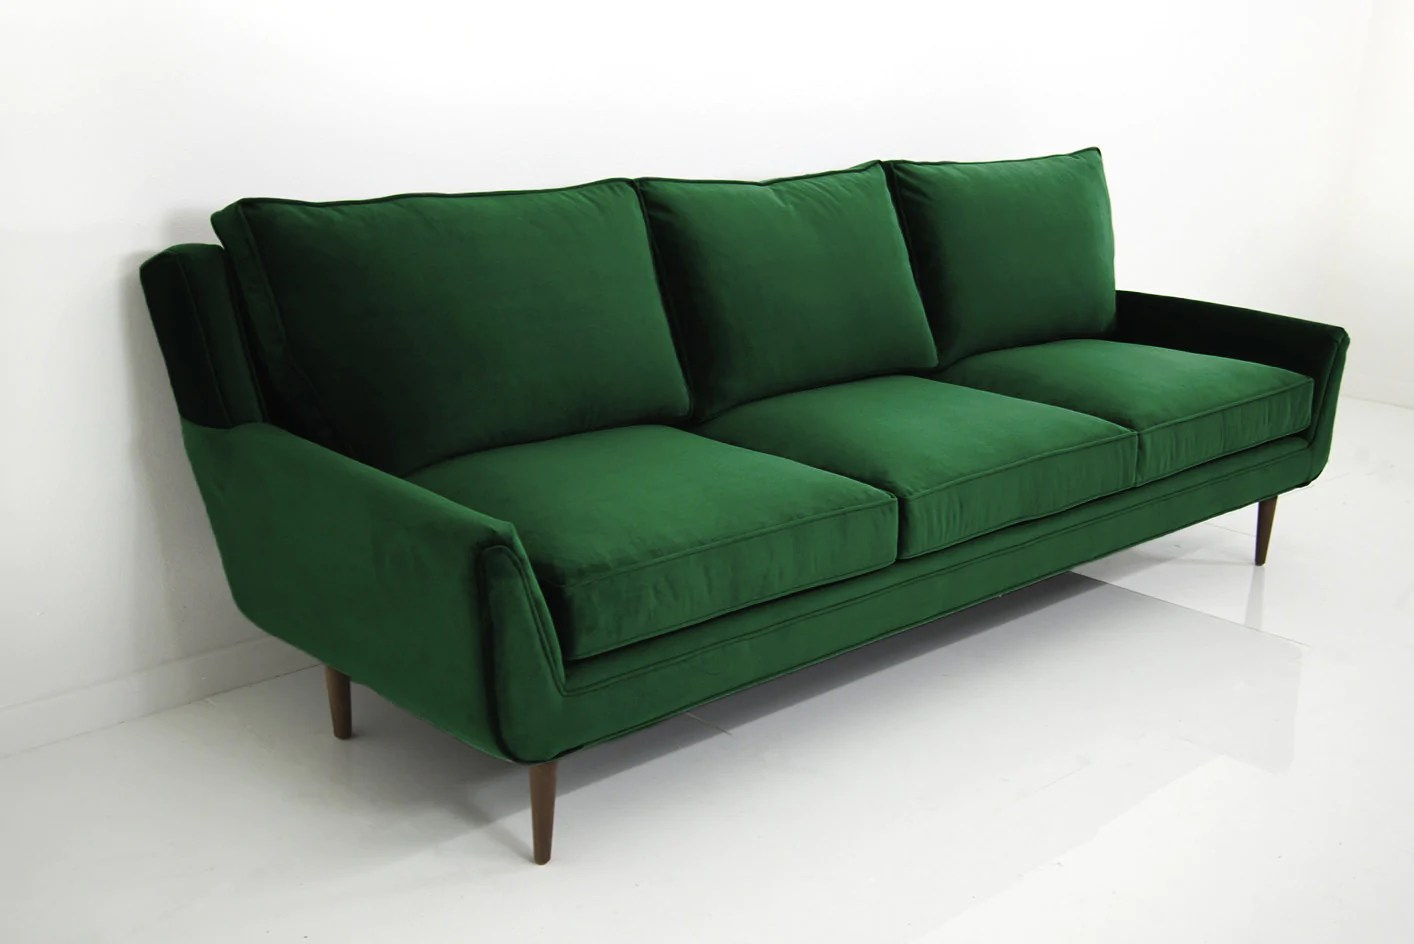 sofa bed green velvet how to put on a sure fit cover stockholm in emerald modshop